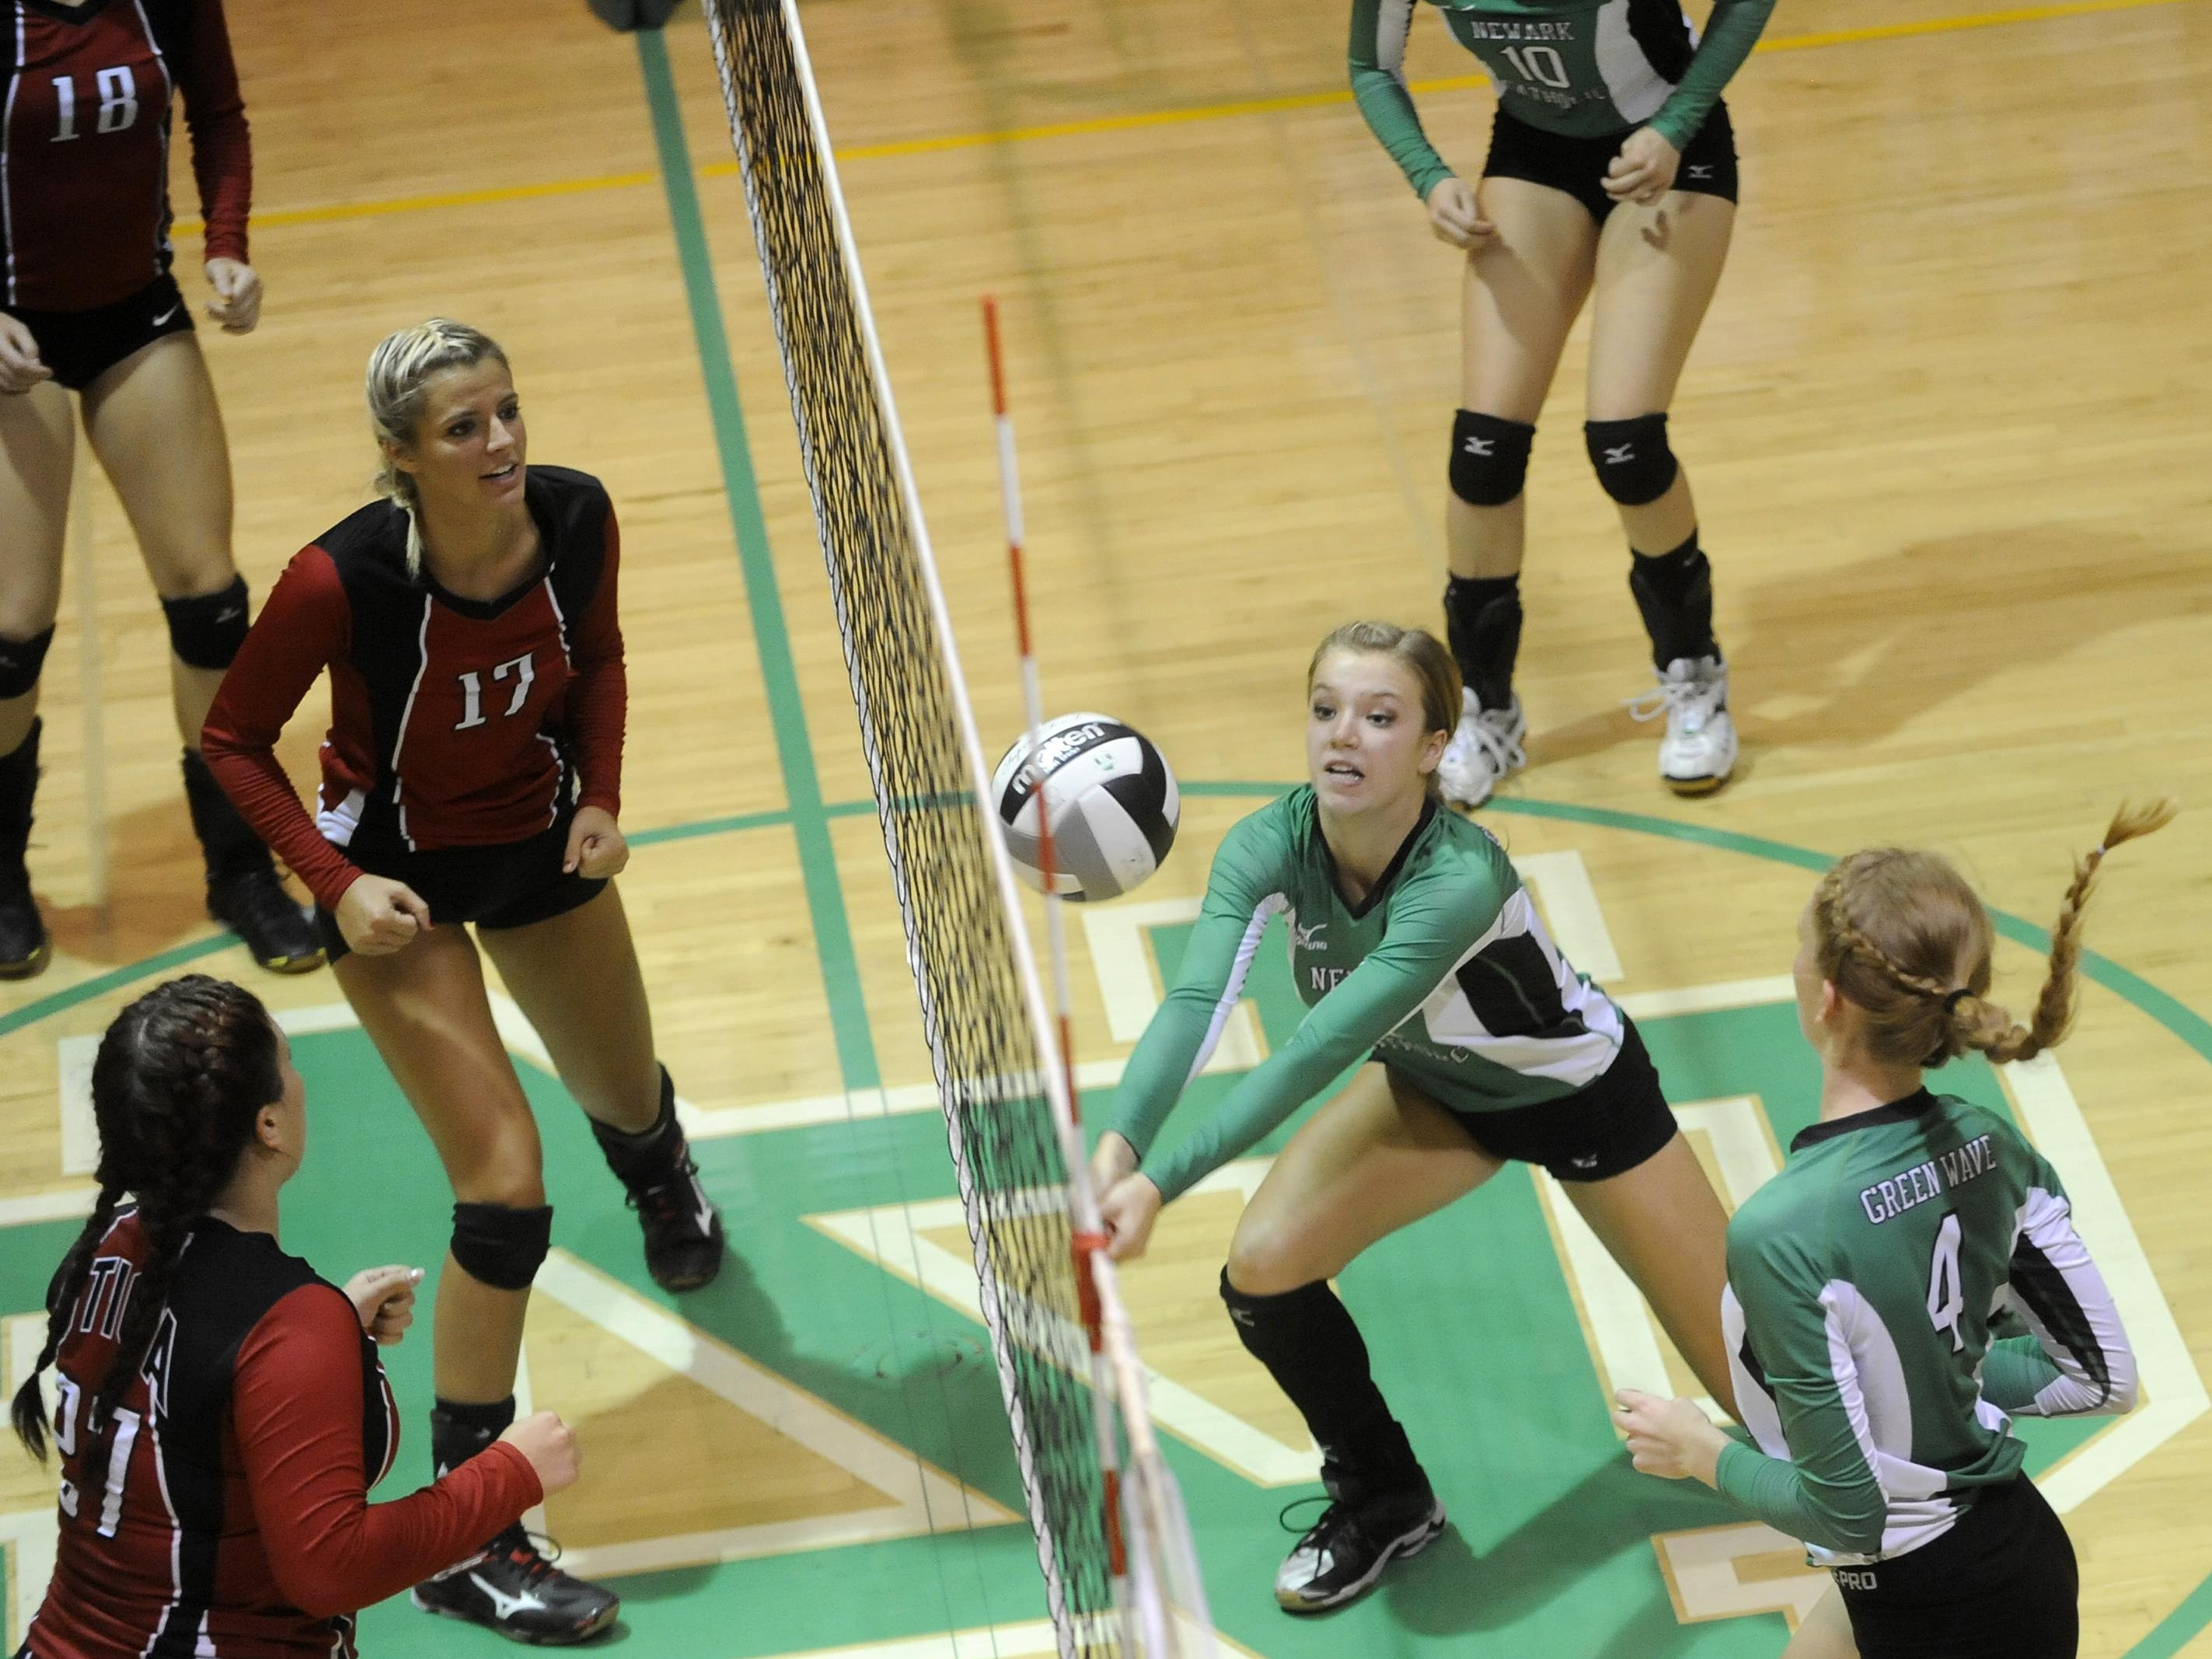 Newark Catholic's Megan Stanton dives for a ball during the Green Wave's victory against Utica in straight sets Thursday.